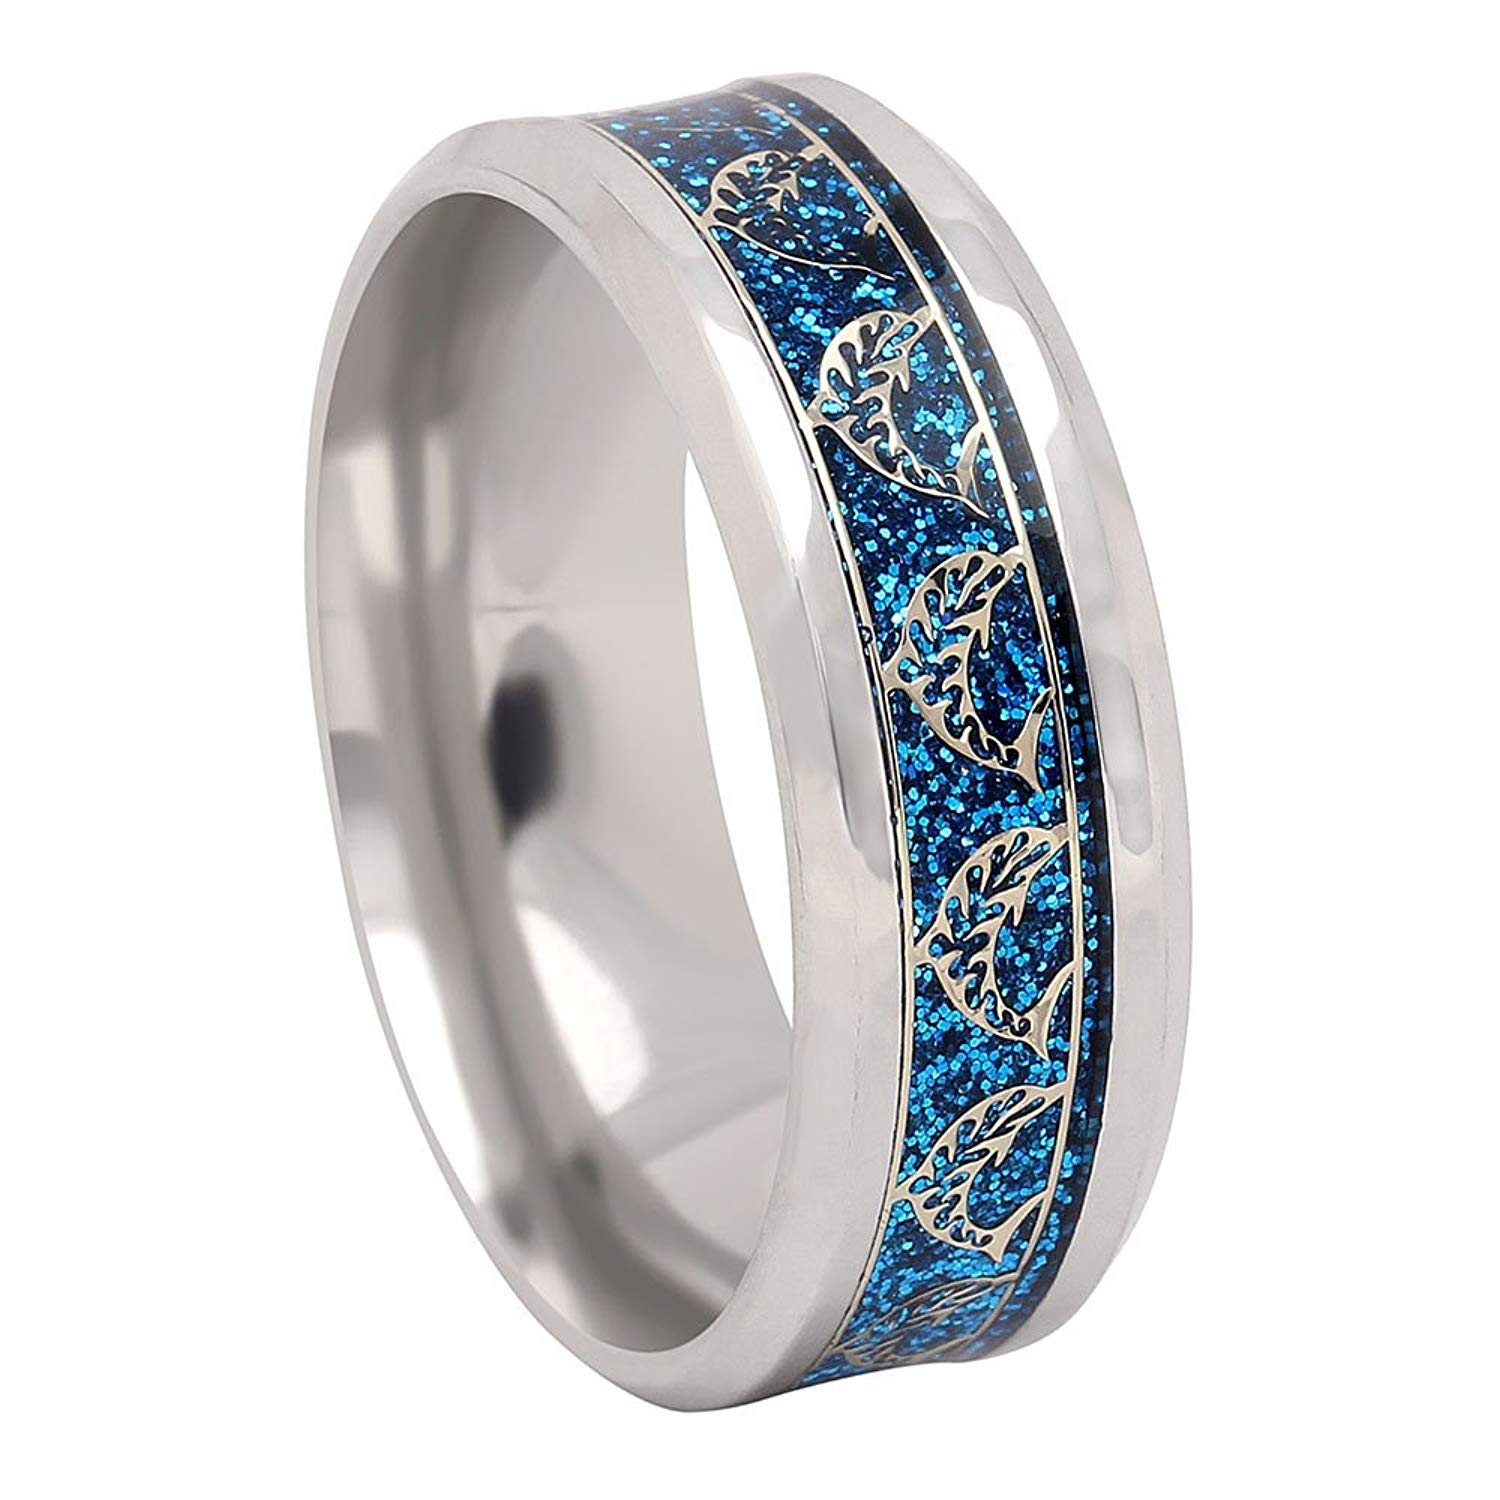 Dolphins Stainless Steel Comfort Fit Wedding Band Ring Ginger Lyne Collection